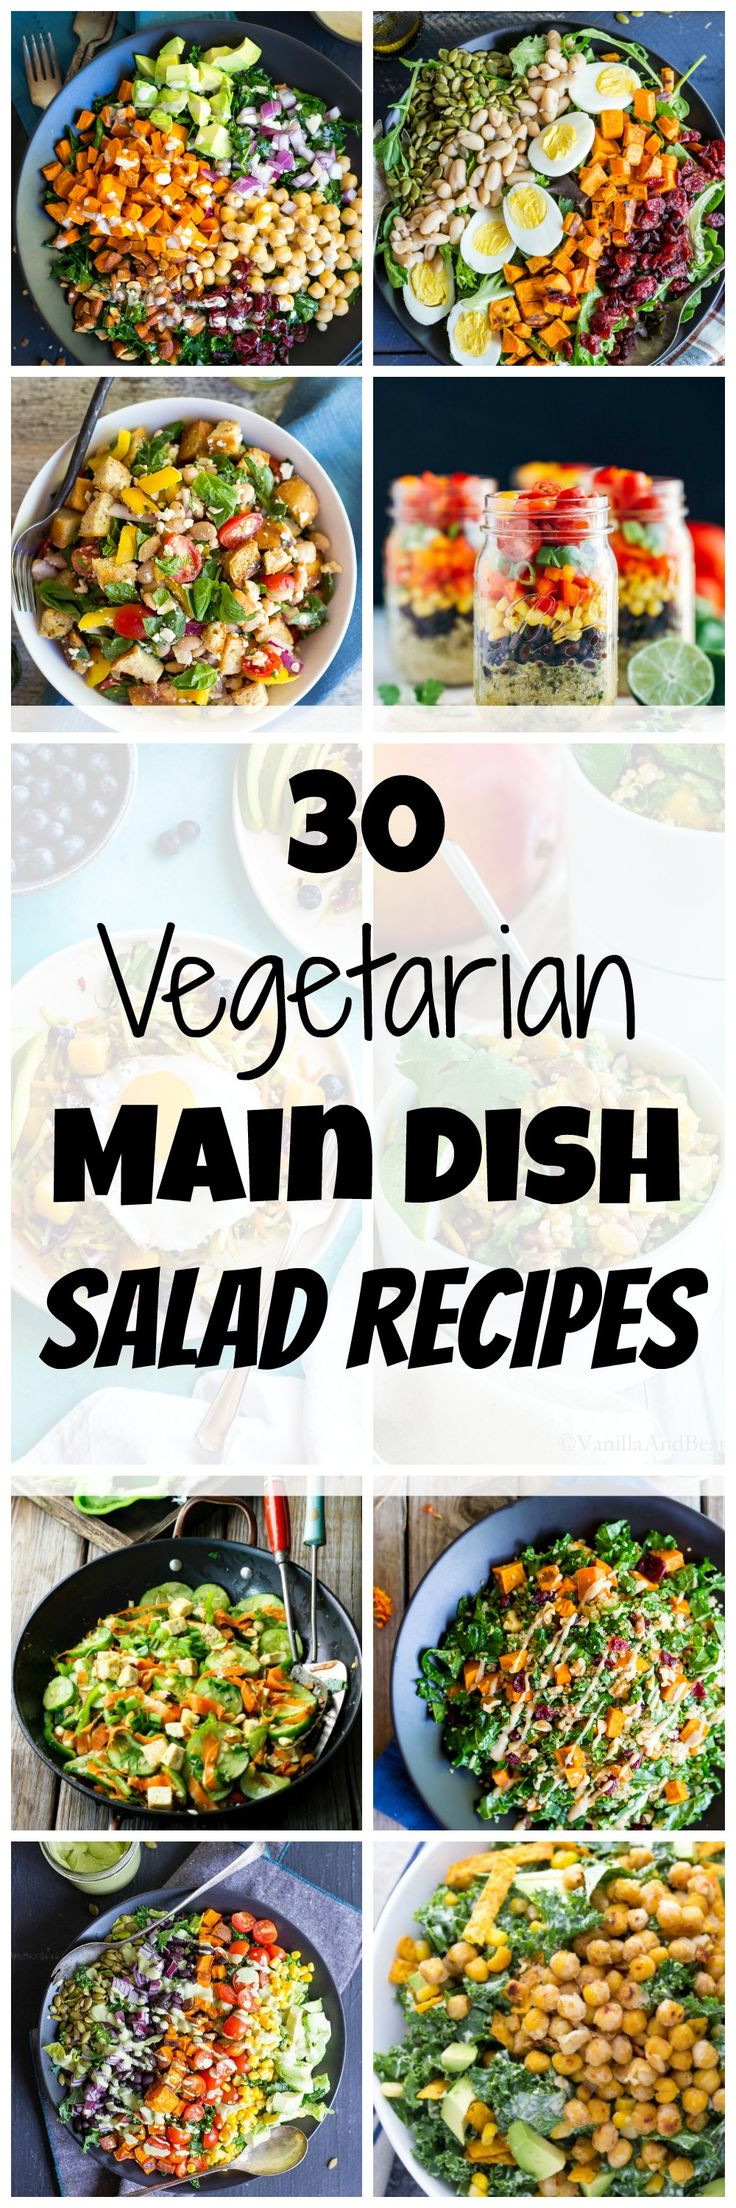 30 Vegetarian Main Dish Salad Recipes for when you want to eat salad for every meal!  Tons of delicious salads all packed with protein and lots of vegetables!  They are perfect for lunch or dinner!